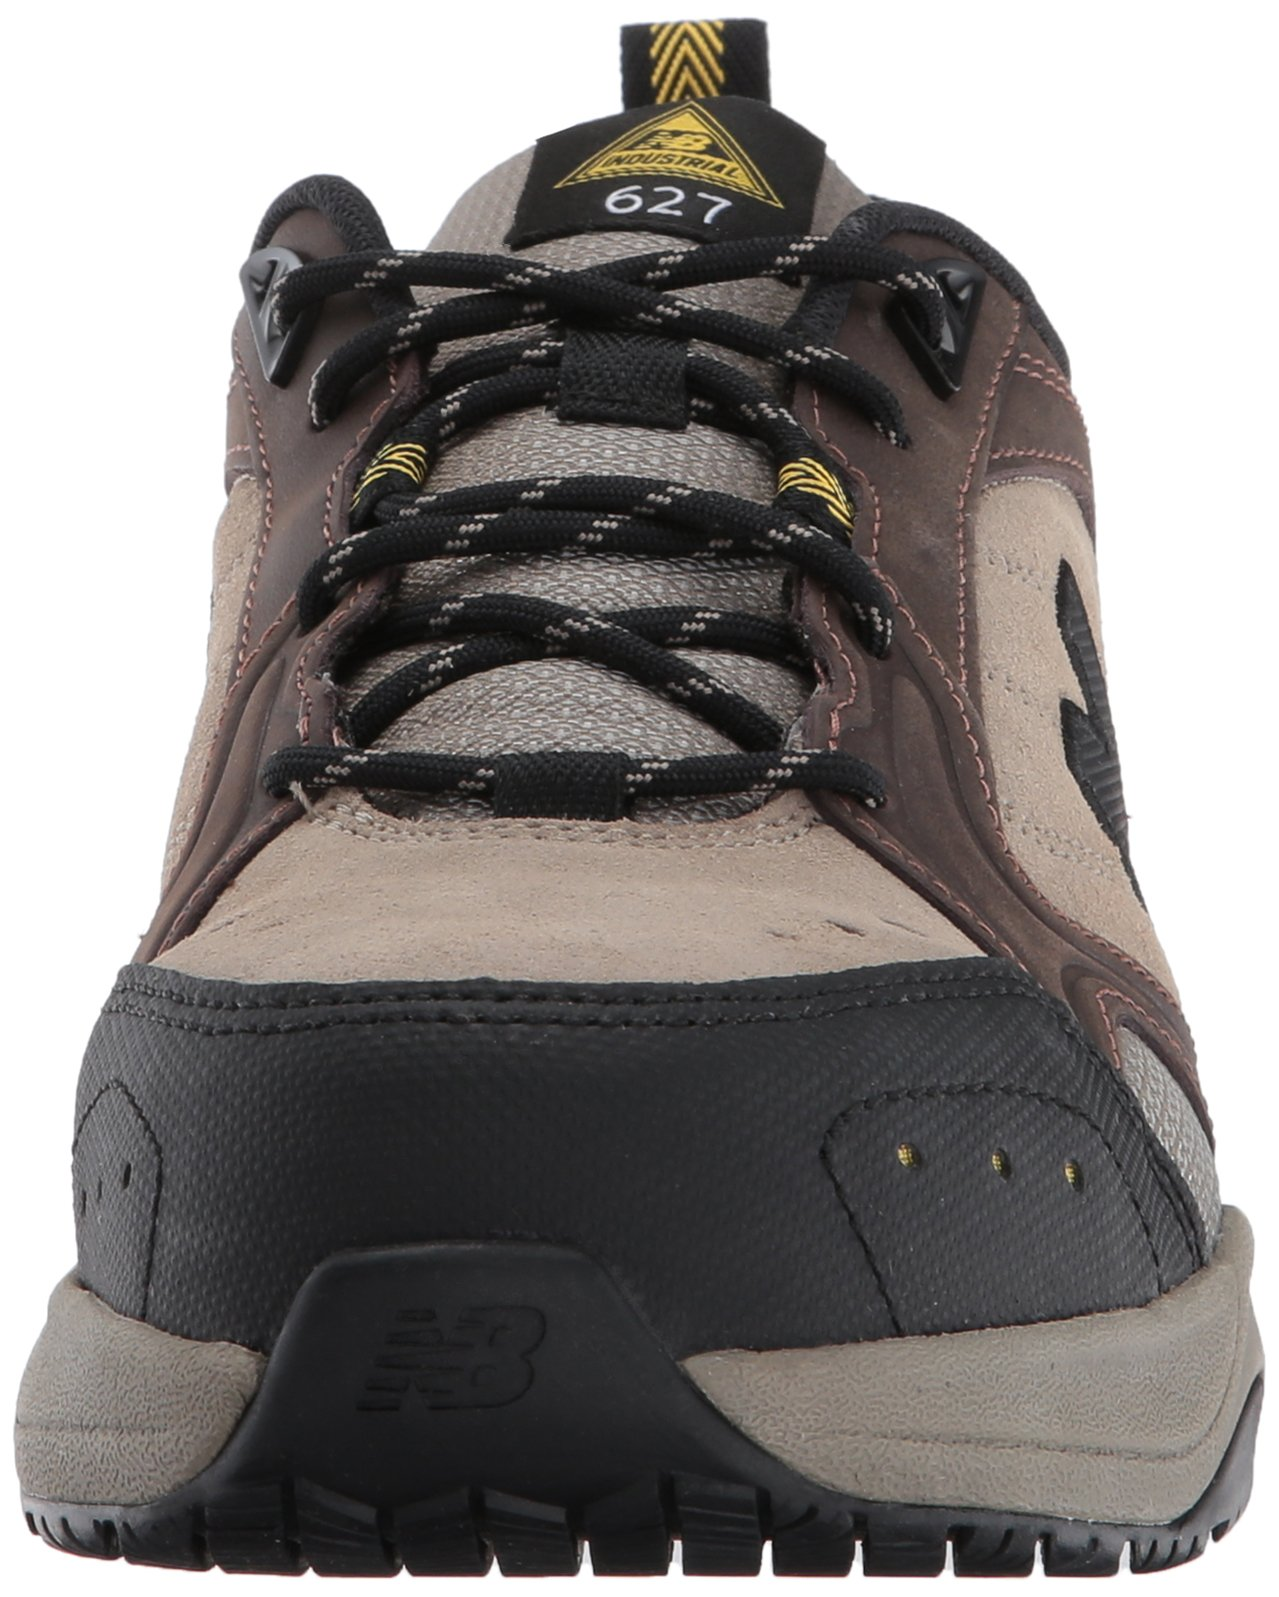 New Balance Men's MID627 Steel-Toe Work Shoe,Brown,18 4E US by New Balance (Image #4)